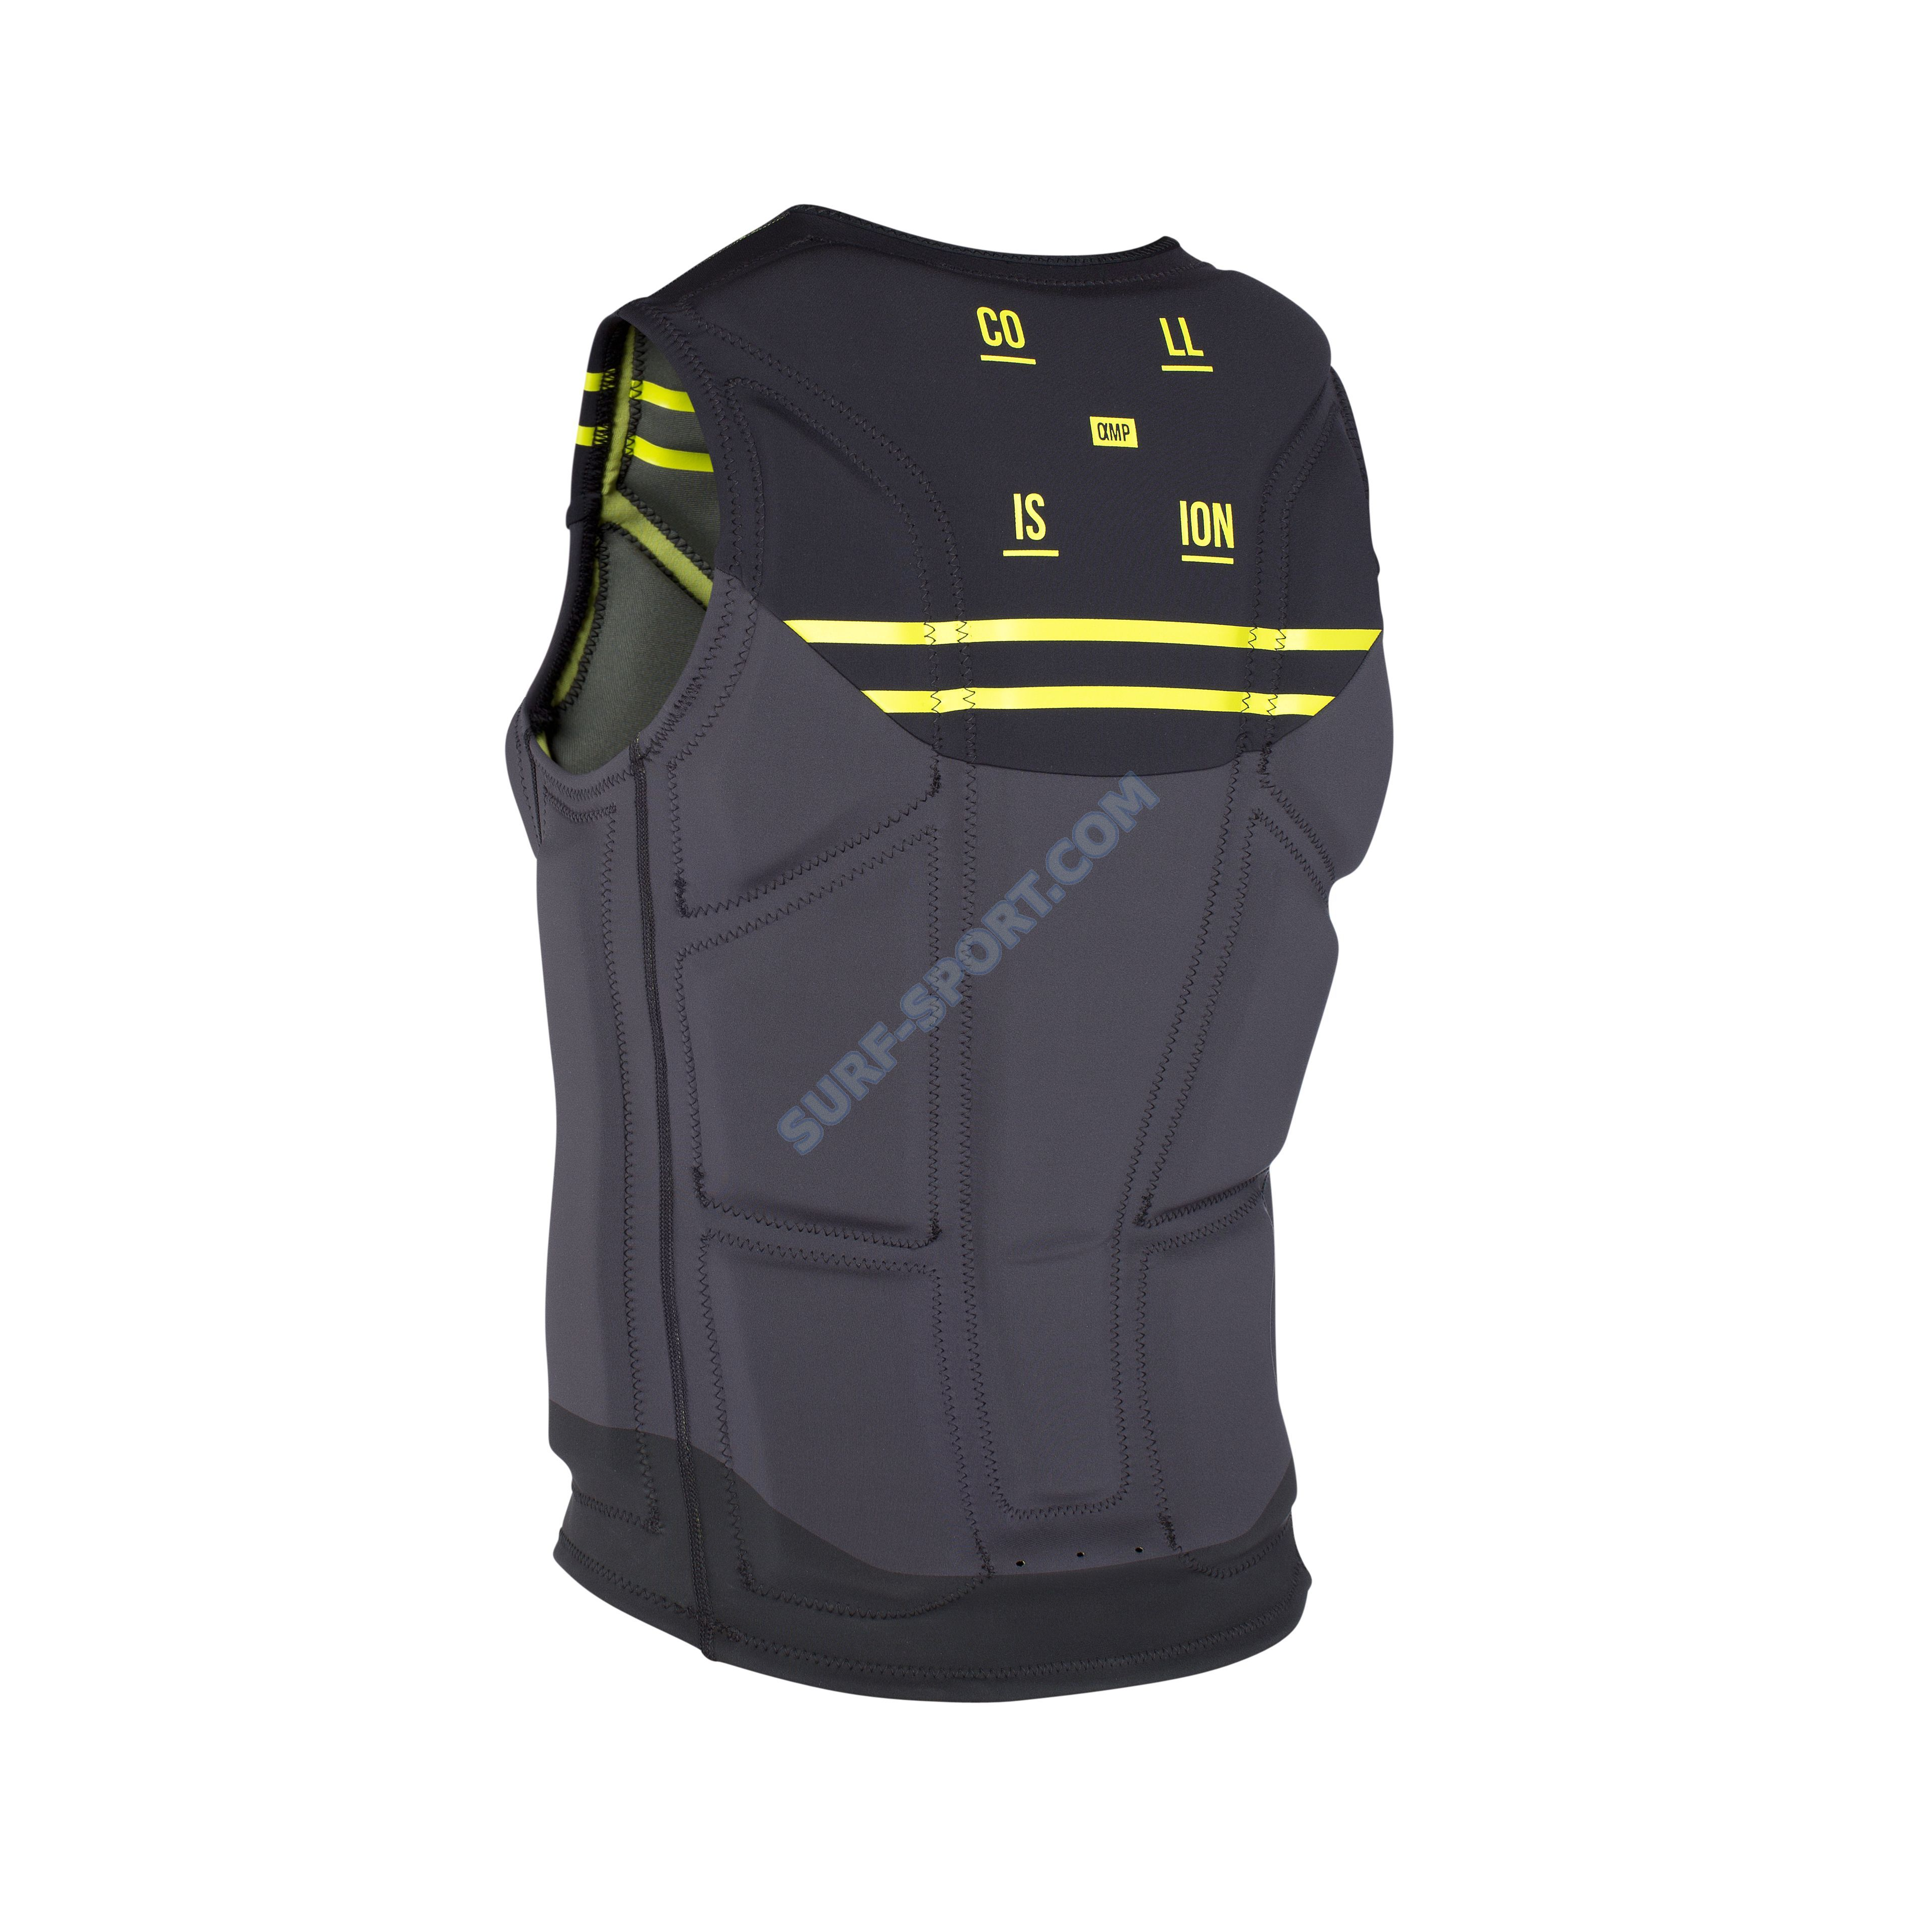 48702-4161_Collision Vest_amp_black_back.jpg